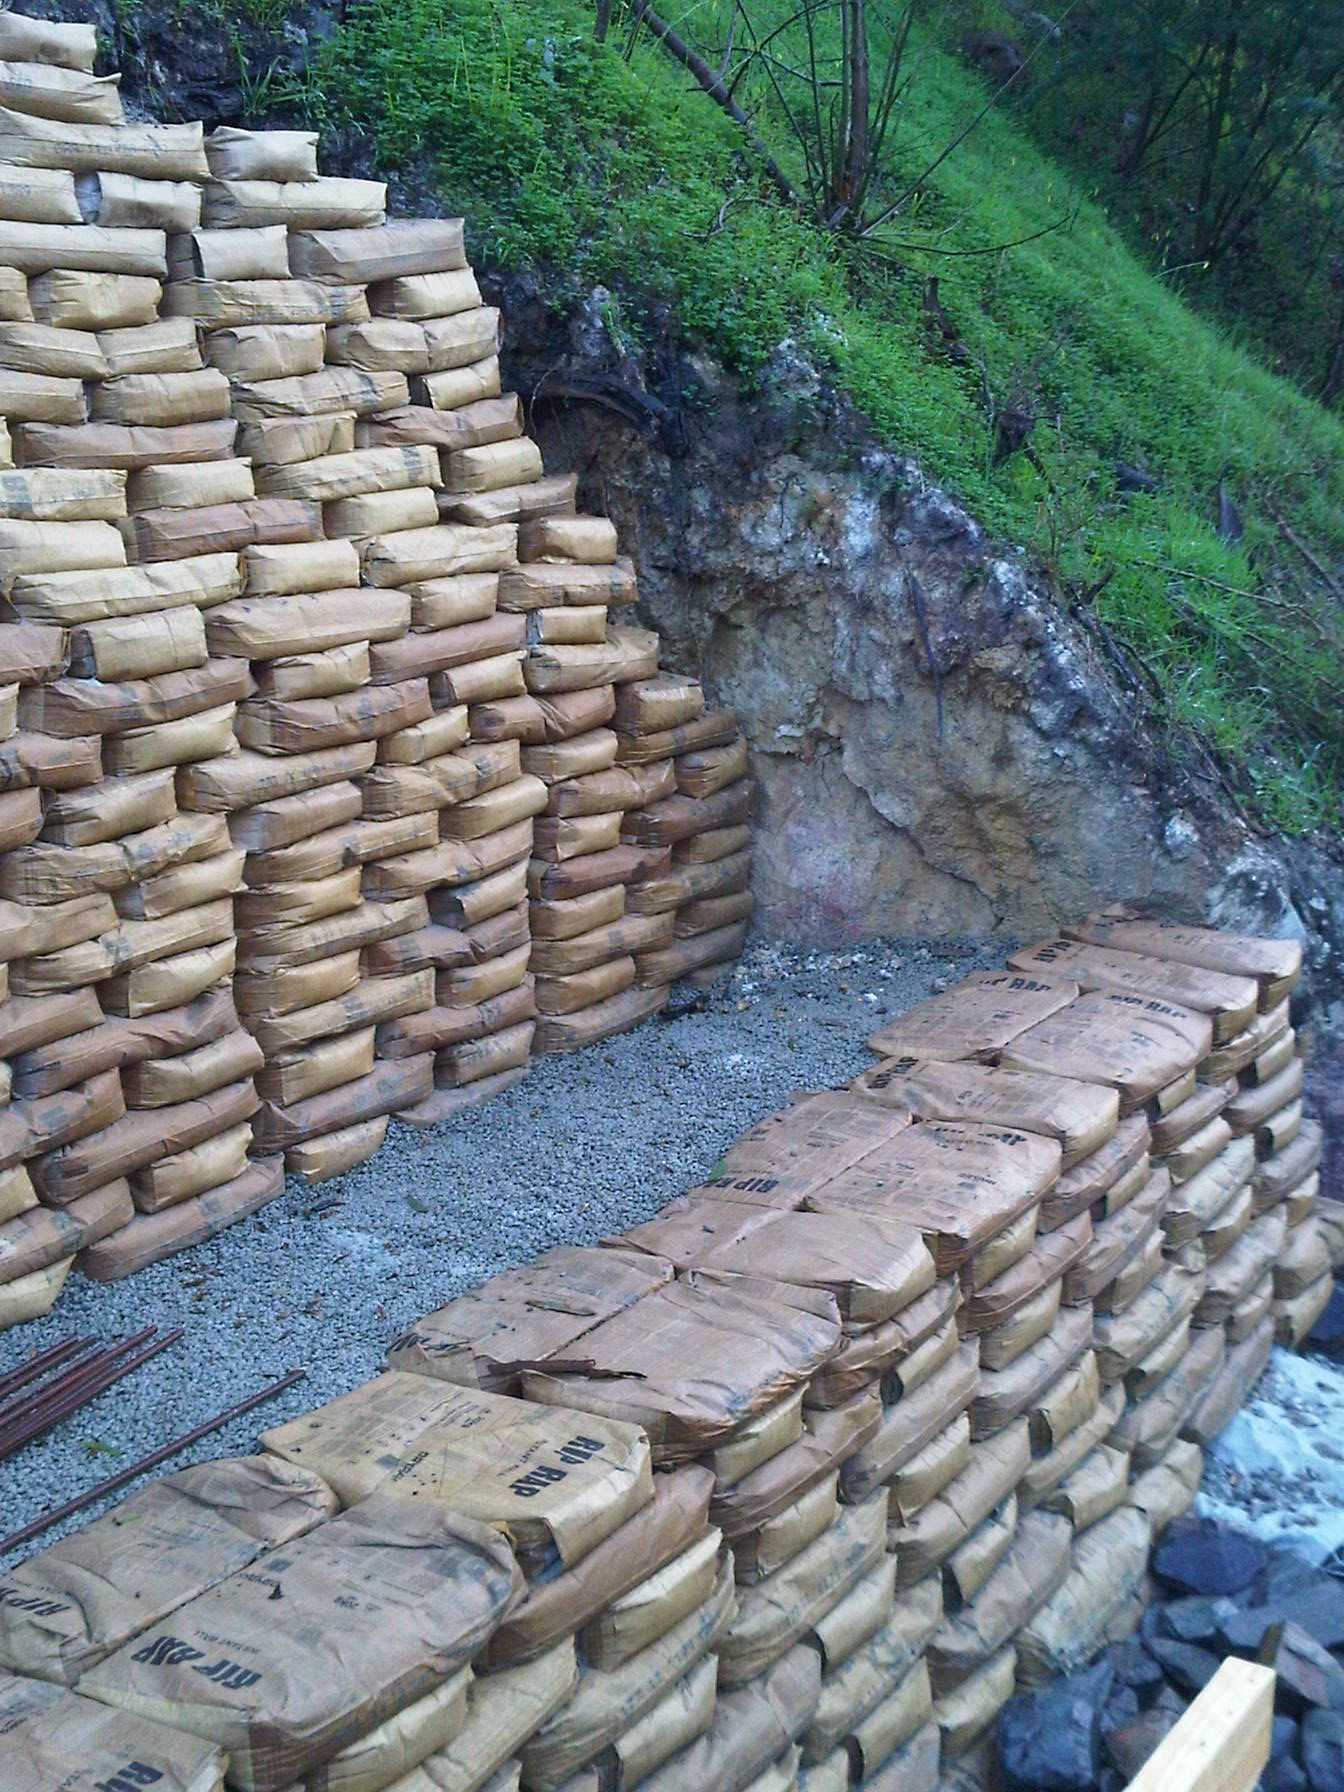 Use Of Concrete Bags As Retaining Walls Google Search Landscaping Retaining Walls Concrete Retaining Walls Concrete Bags